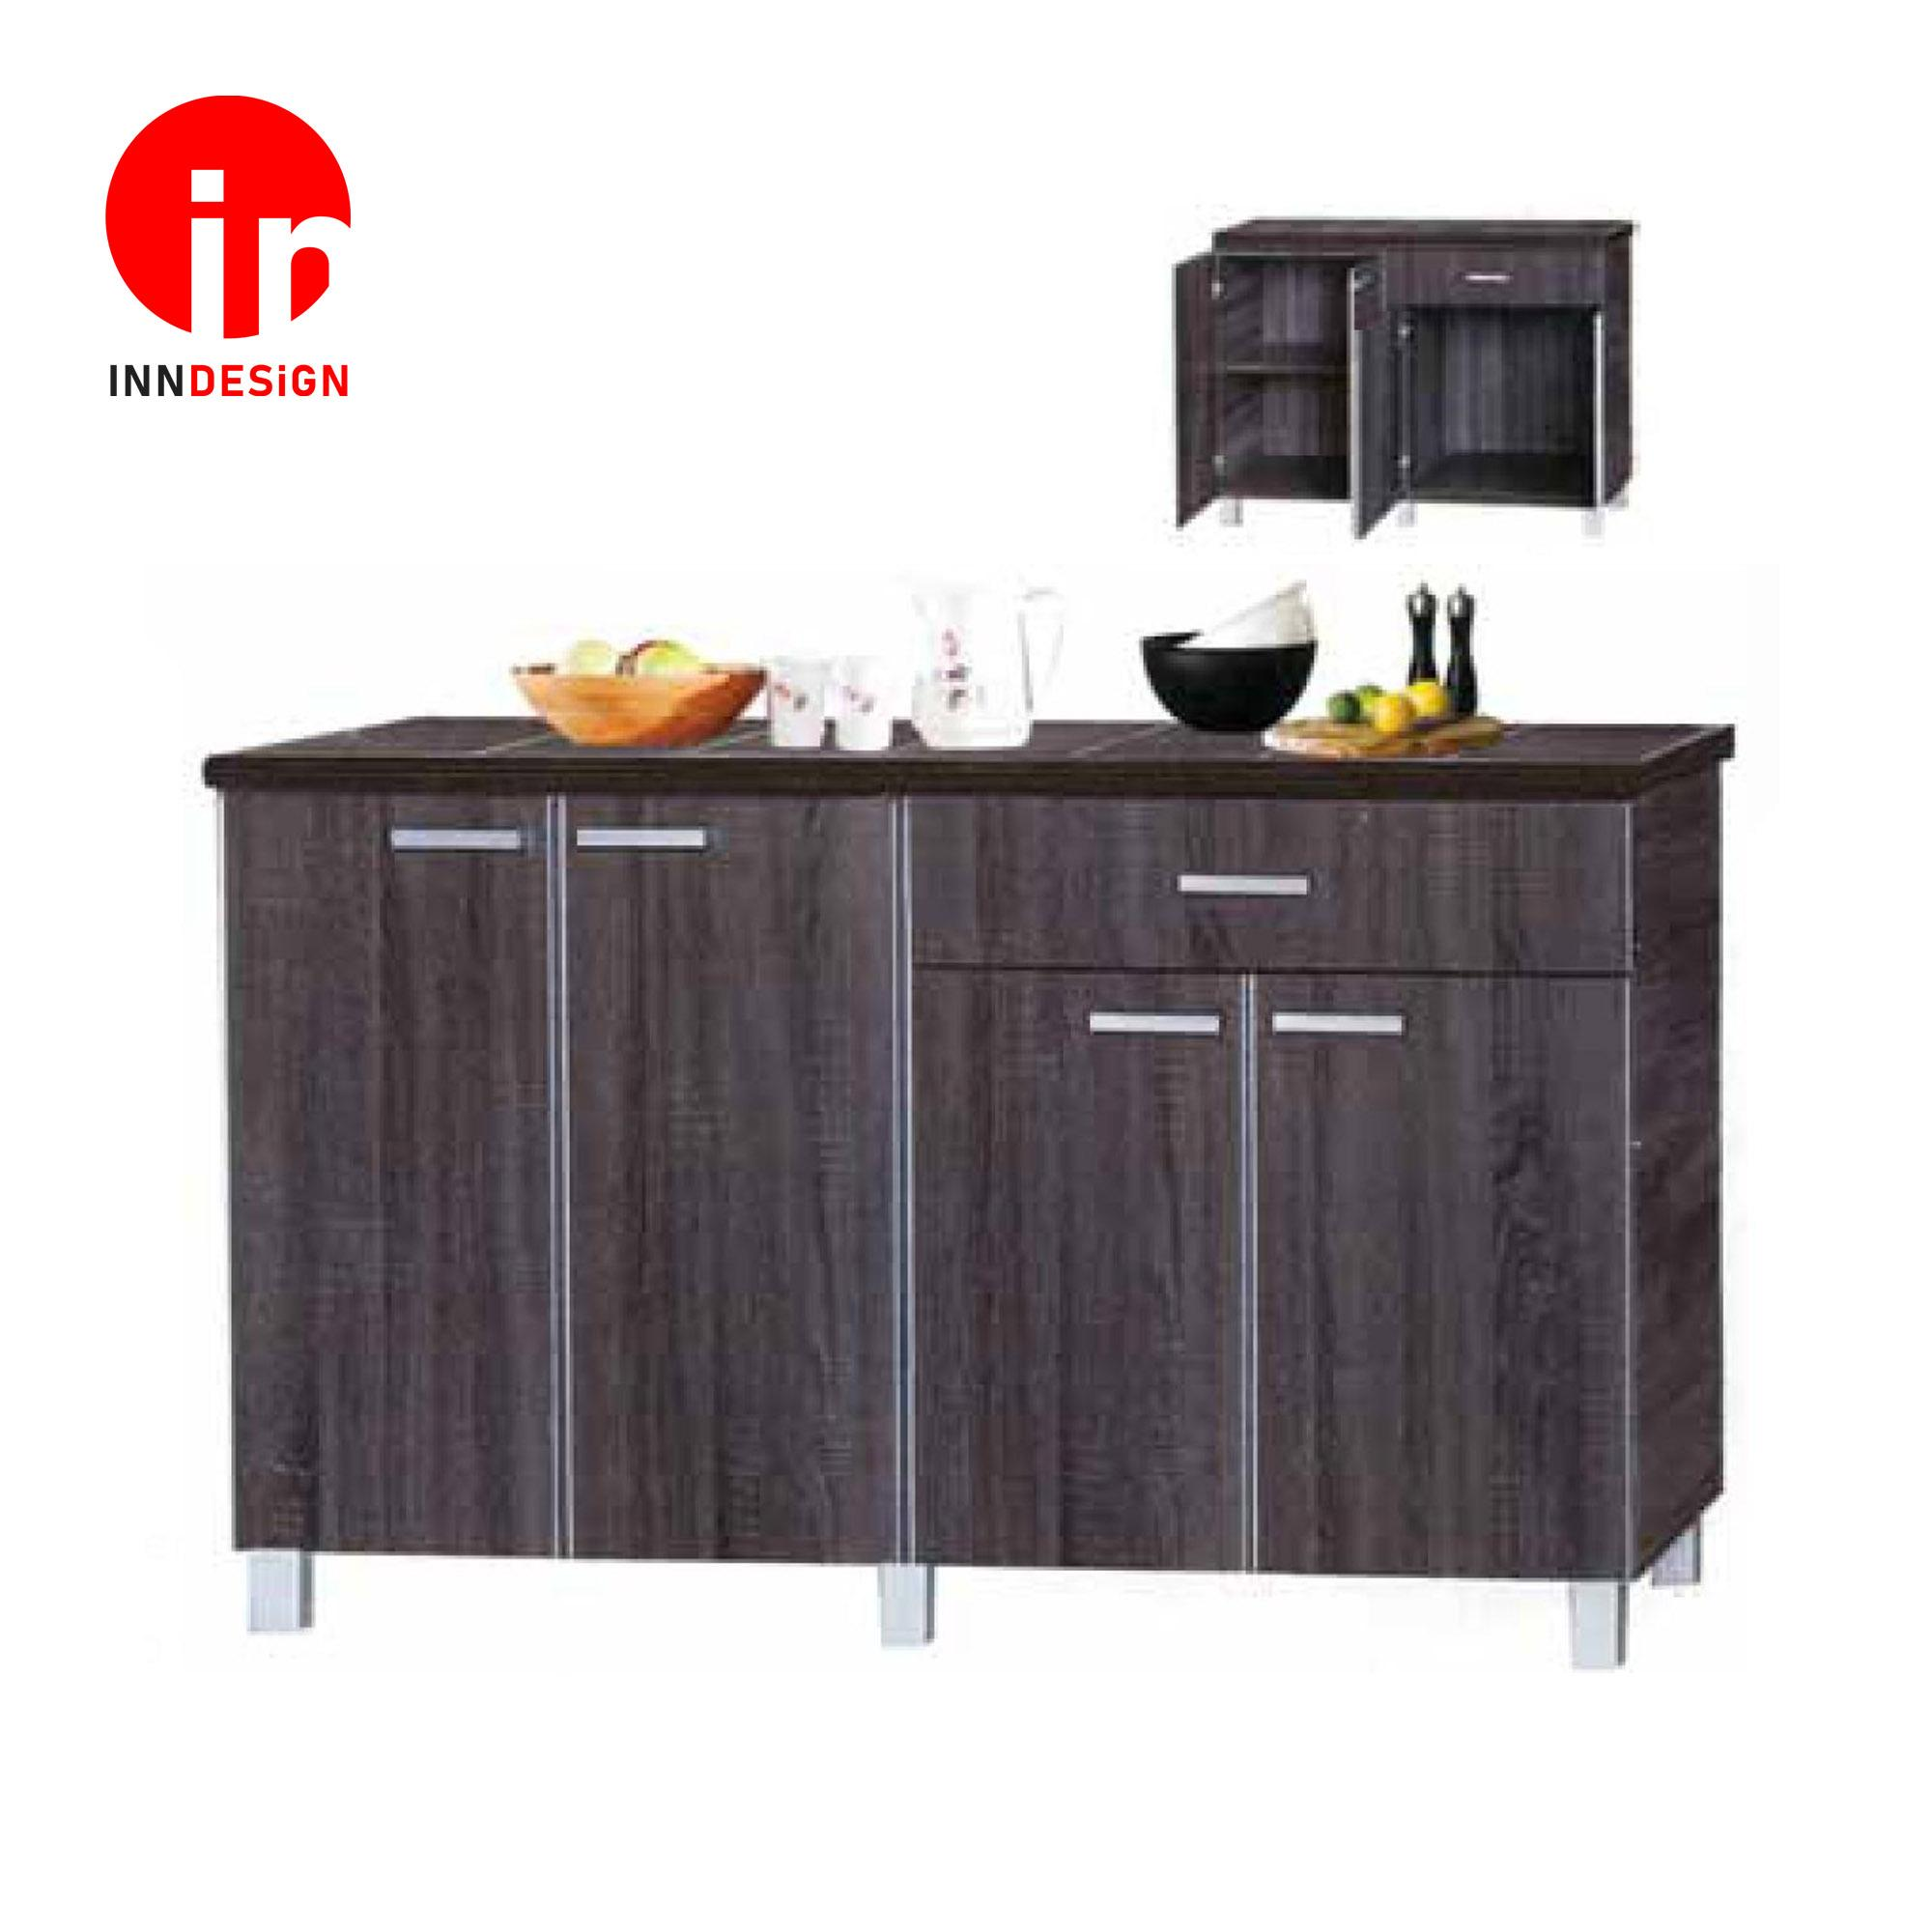 Cassiva 4 Doors With Drawer Kitchen Cabinet  (Ceramic Tiles Top) (Free Delivery and Installation) (Walnut)